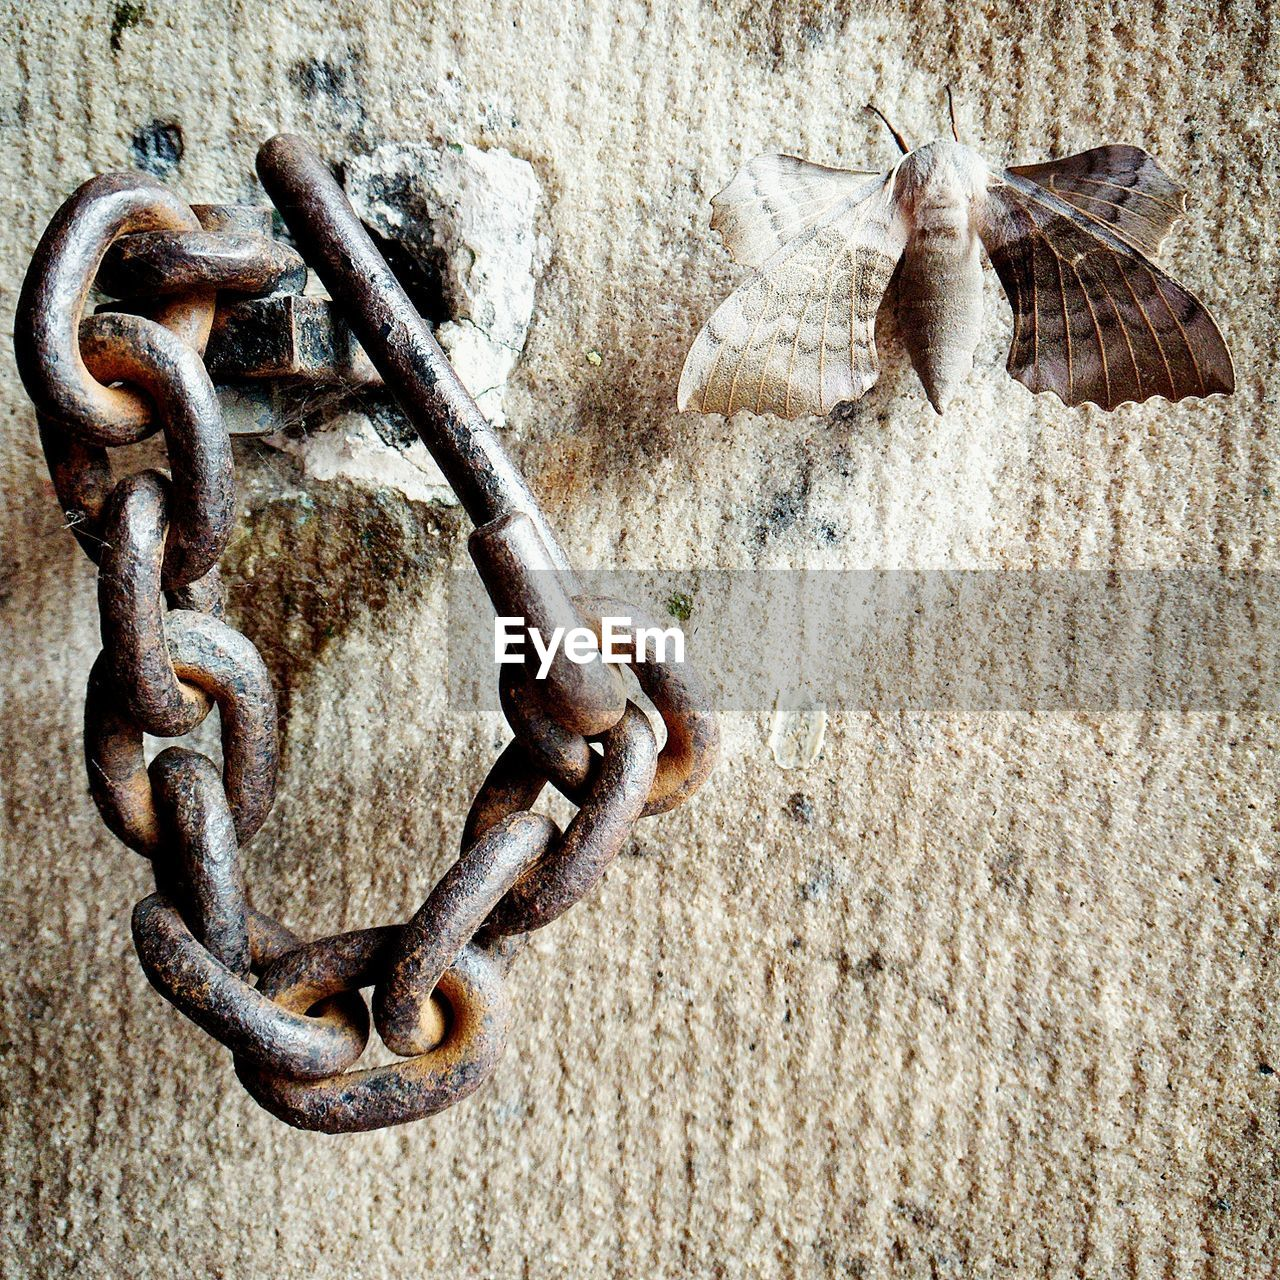 metal, no people, rusty, chain, wall - building feature, close-up, day, nature, weathered, outdoors, animal, group of animals, animal themes, wall, hanging, textured, connection, sunlight, architecture, land, concrete